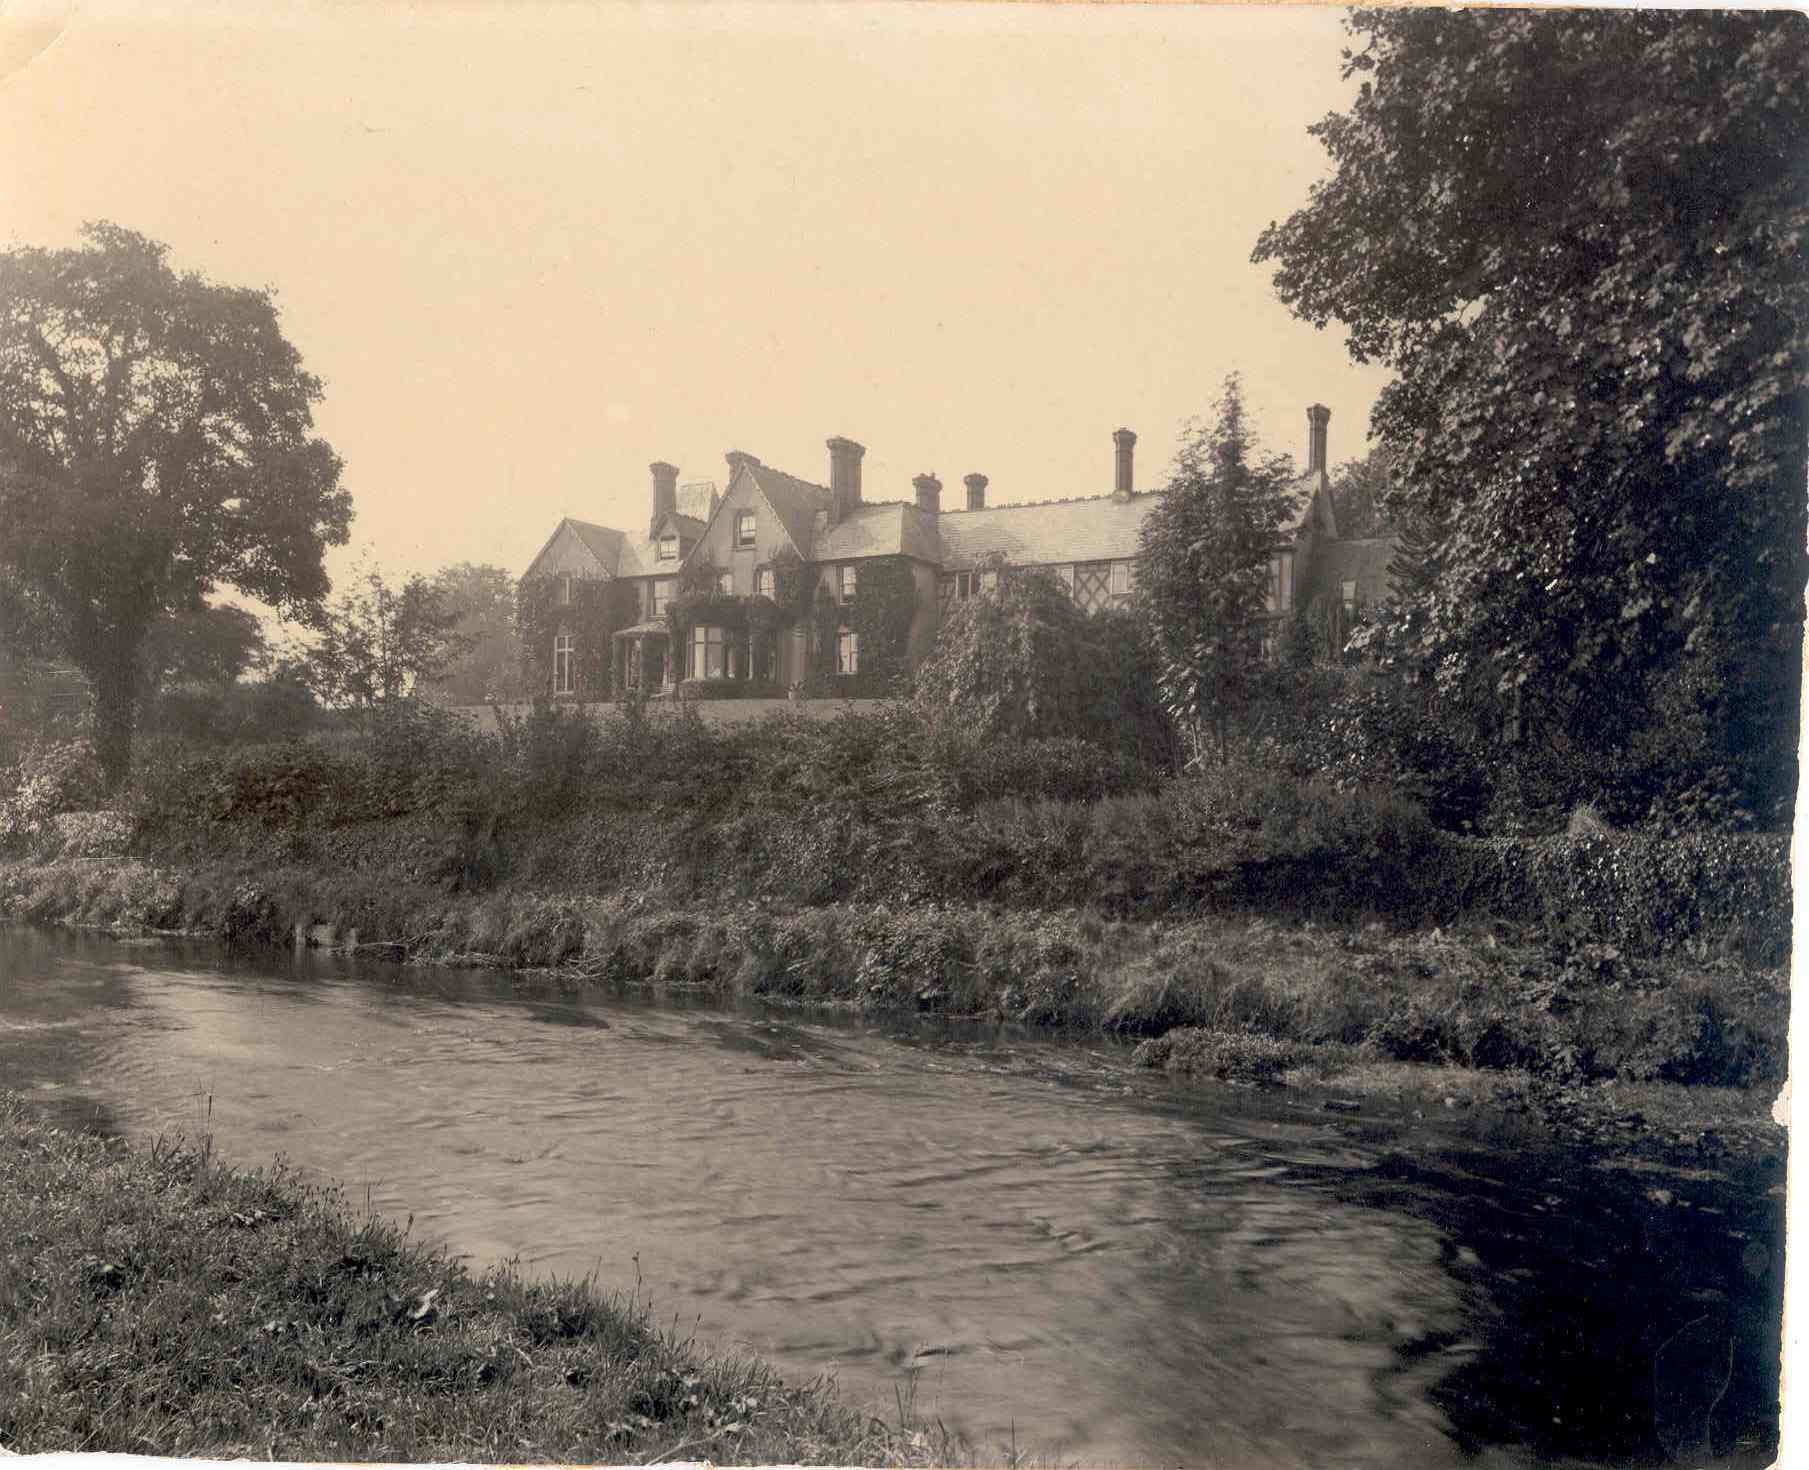 Cronkbourne House (Tromode House), view from river in 1890s